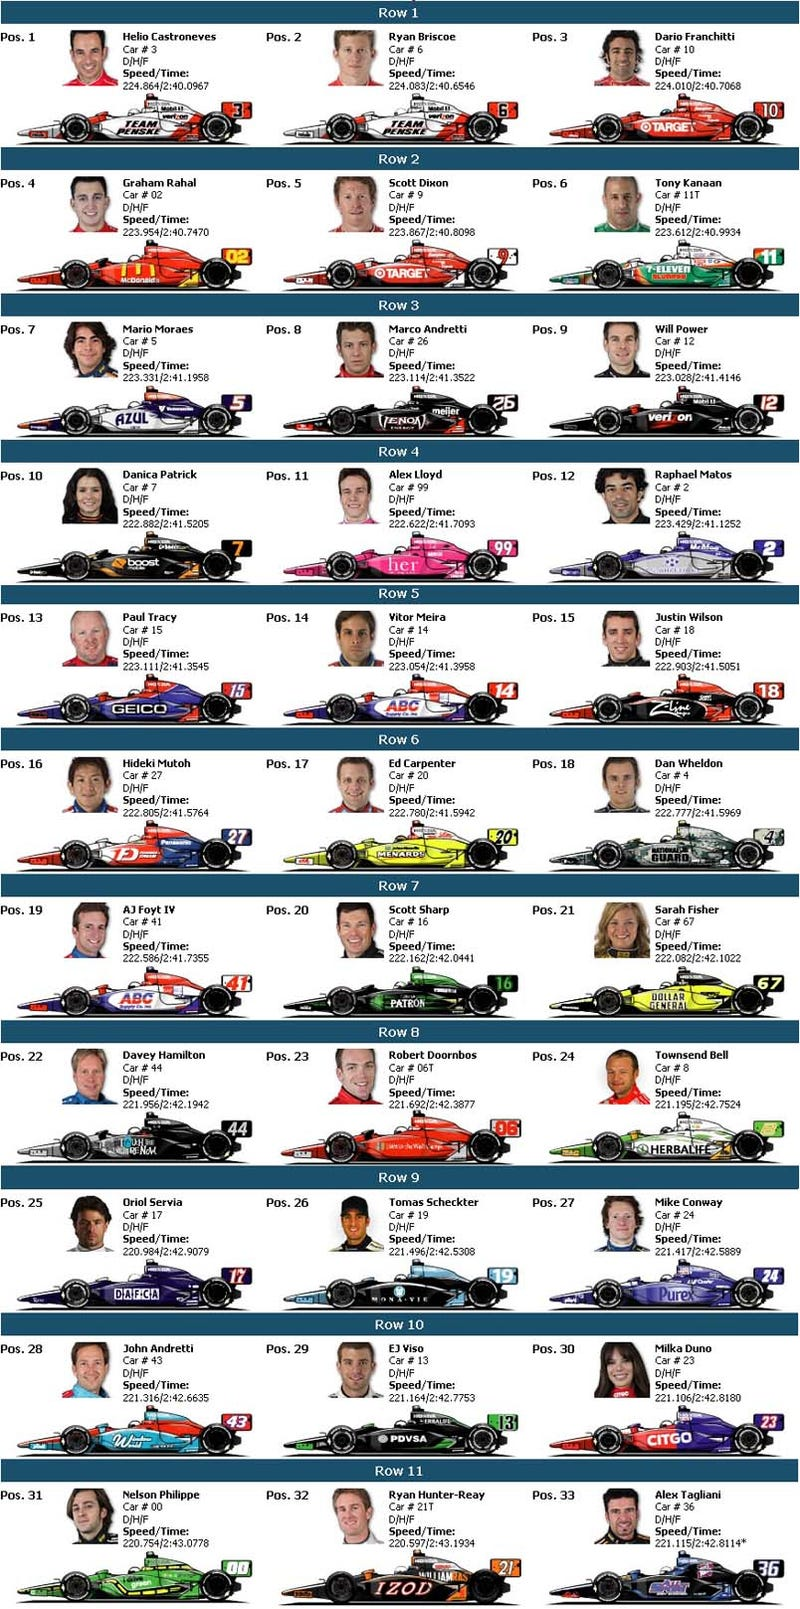 Everything You Need To Know About The 2009 Indy 500